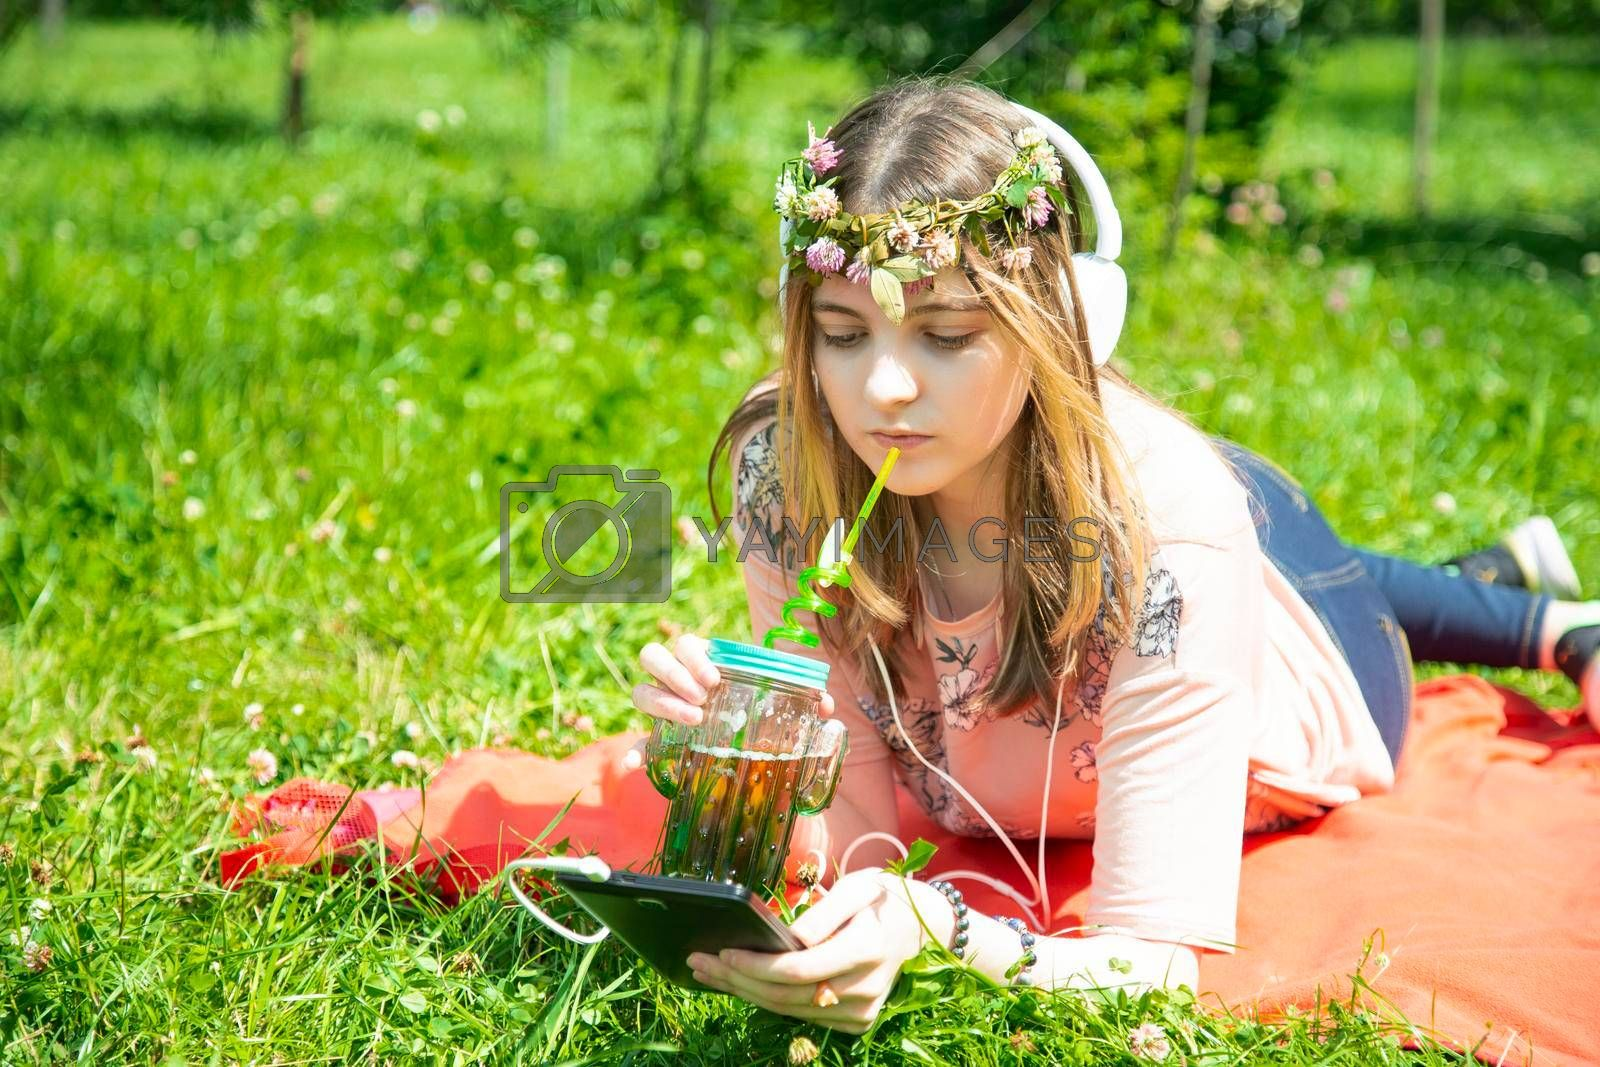 A young girl listens to music on her mobile phone and drinks smoothies in park by galinasharapova